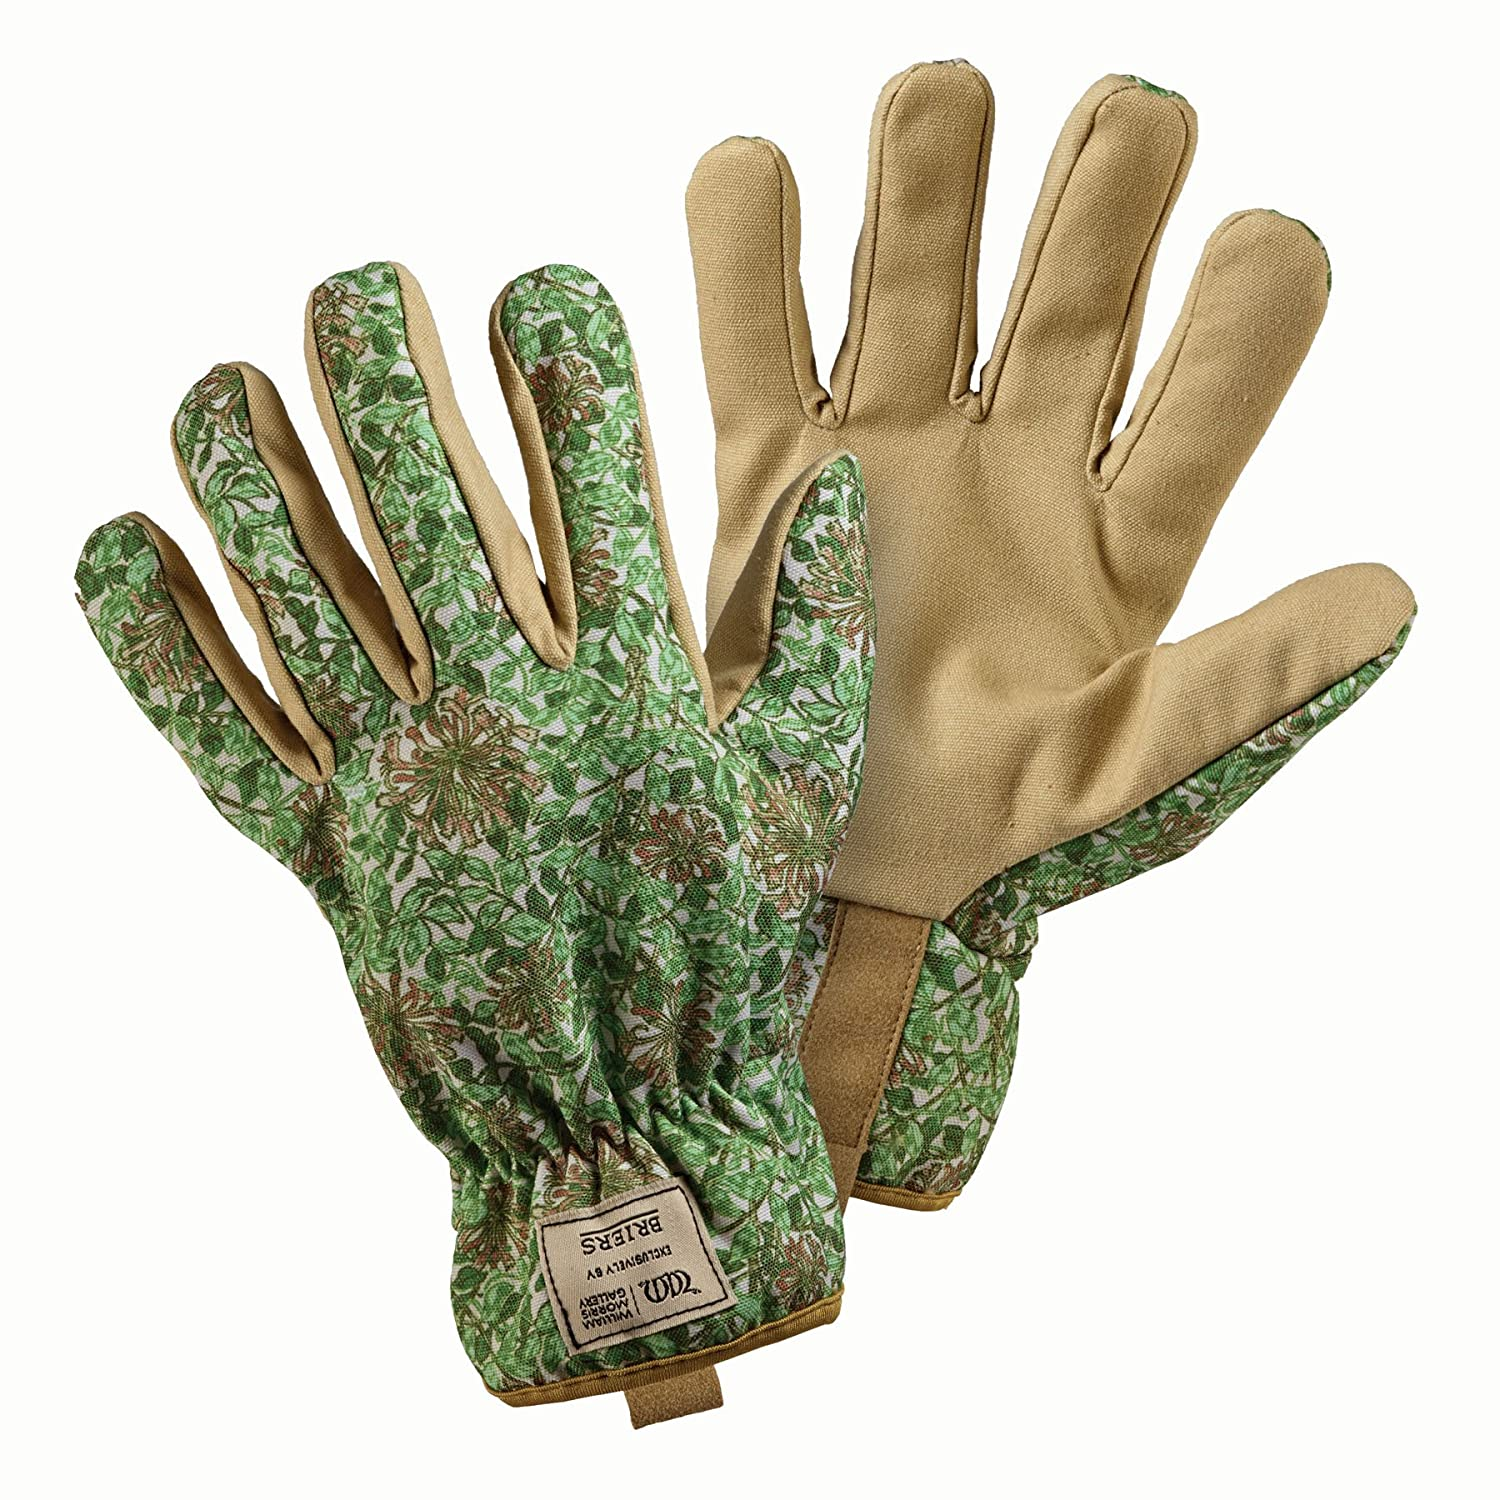 William Morris Honeysuckle Gardeners Glove by Briers Briers Ltd B6328